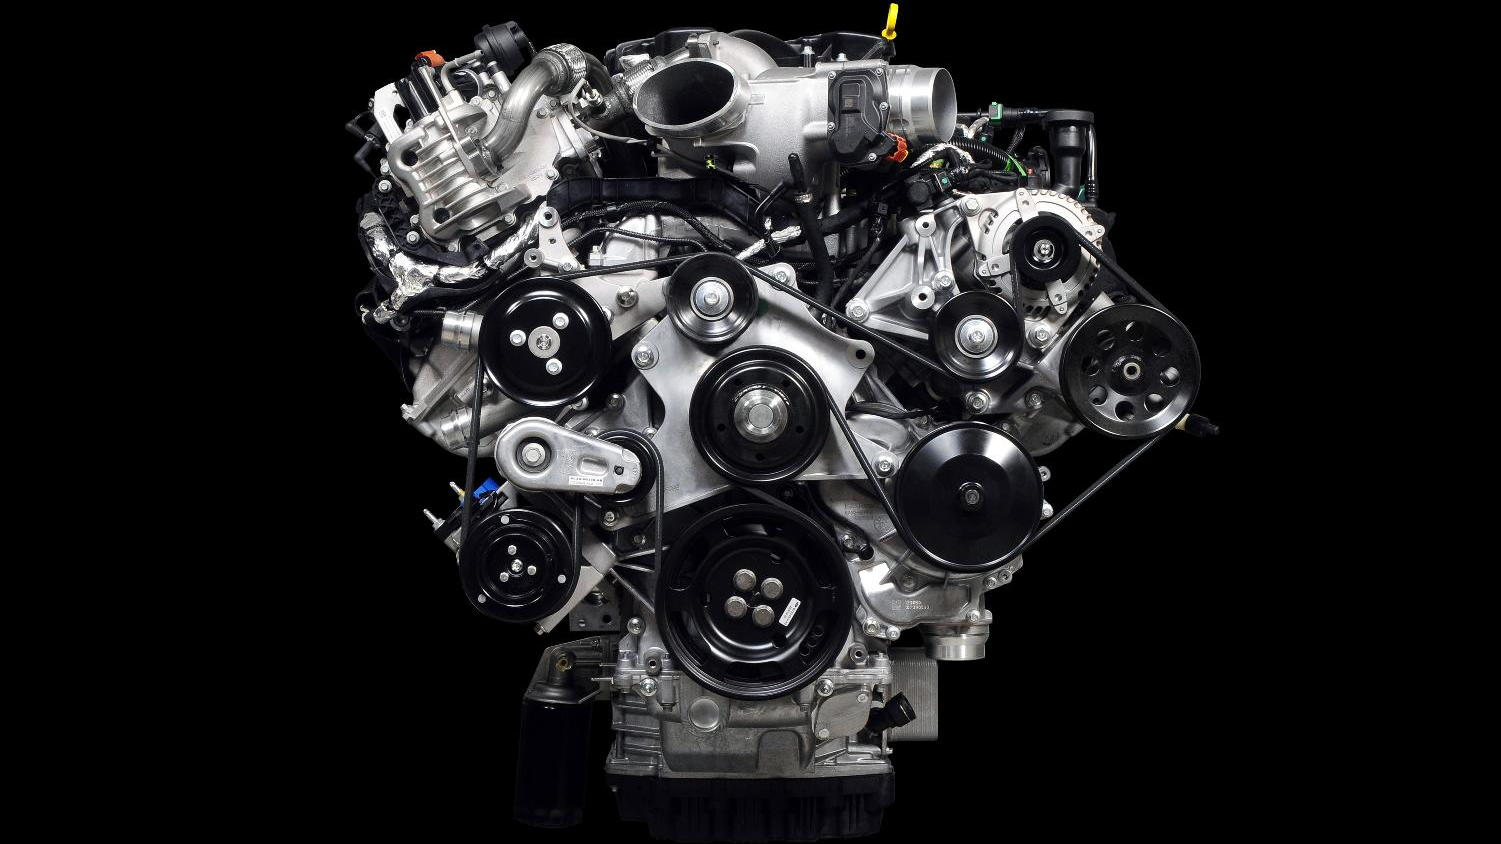 Ford 6.7-liter Power Stroke V-8 diesel engine, to be fitted to 2011 F-Series Super Duty pickups.